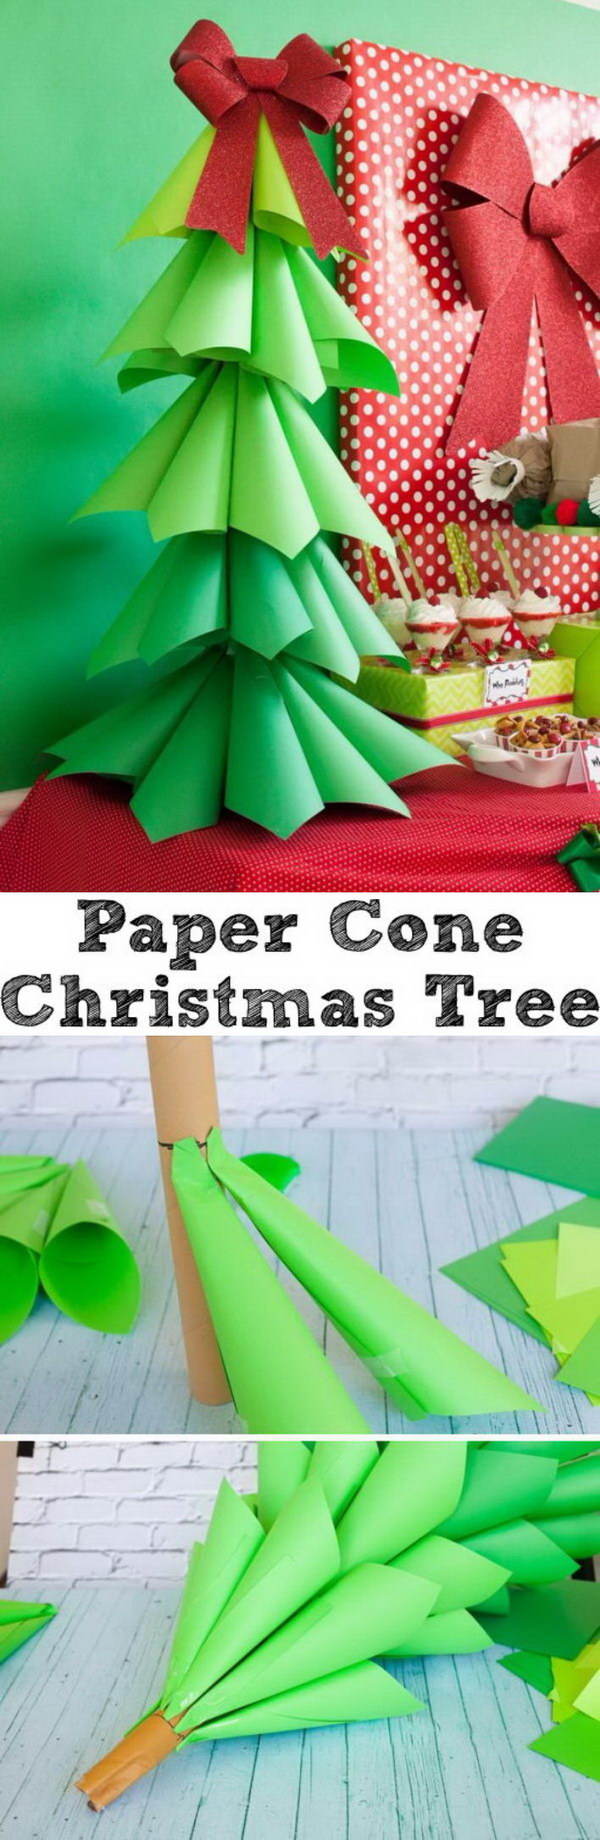 Giant Ombre Paper Cone Christmas Trees.